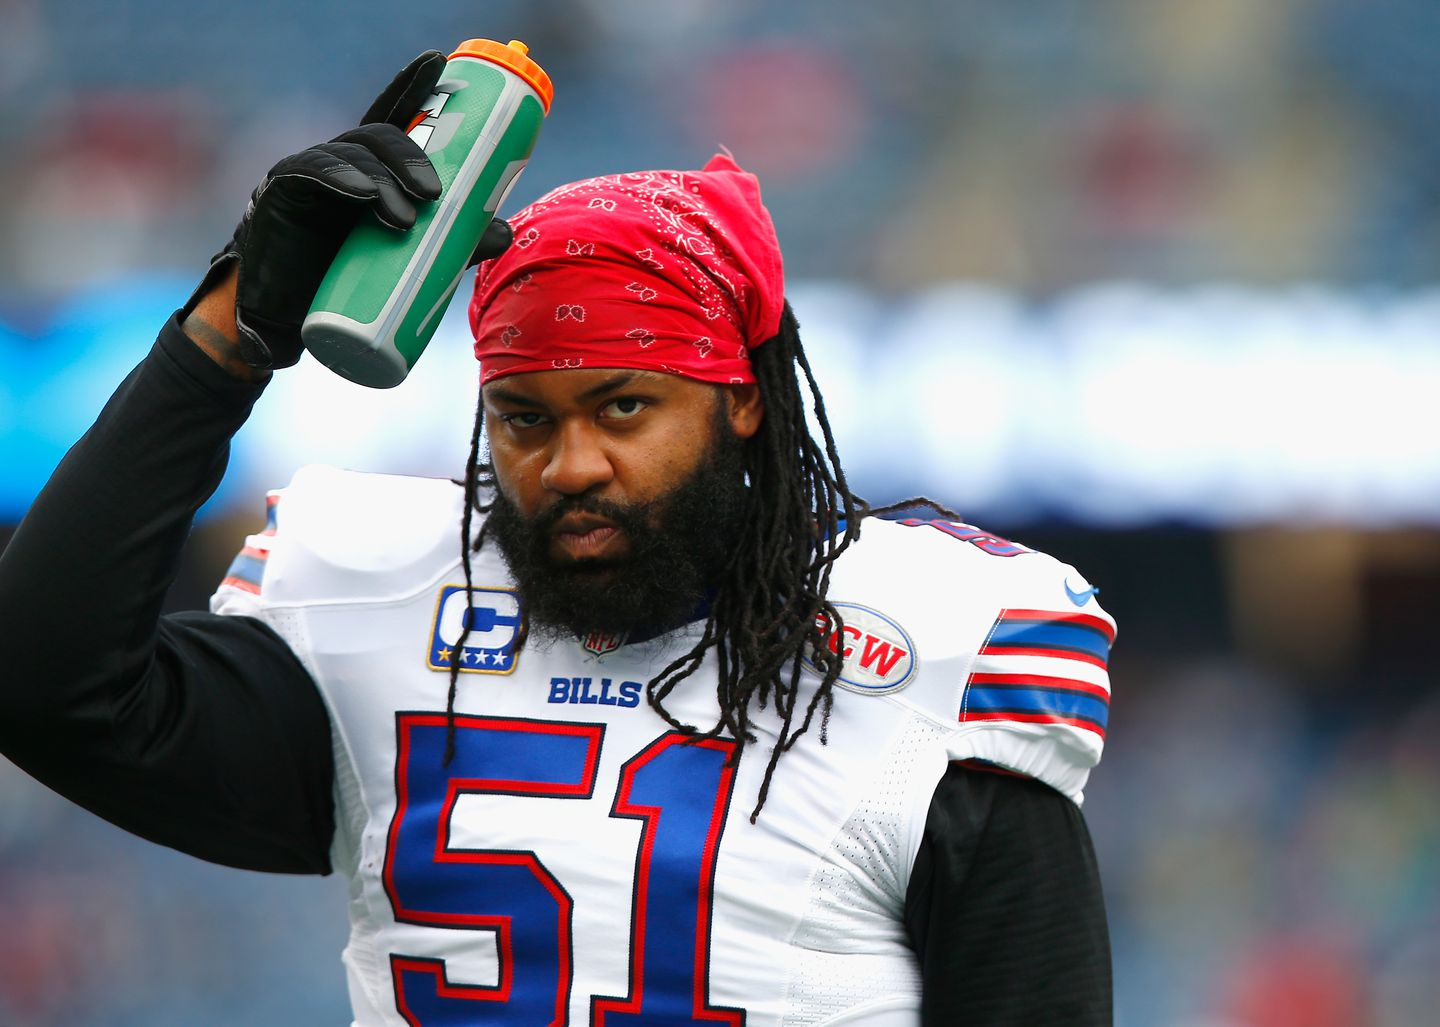 """Brandon Spikes of the Buffalo Bills before a game against the Patriots in December of 2014. In a phone call with Aaron Hernandez in October of 2014, Spikes suggested that he planned to take """"a little Toradol"""" before his next game."""